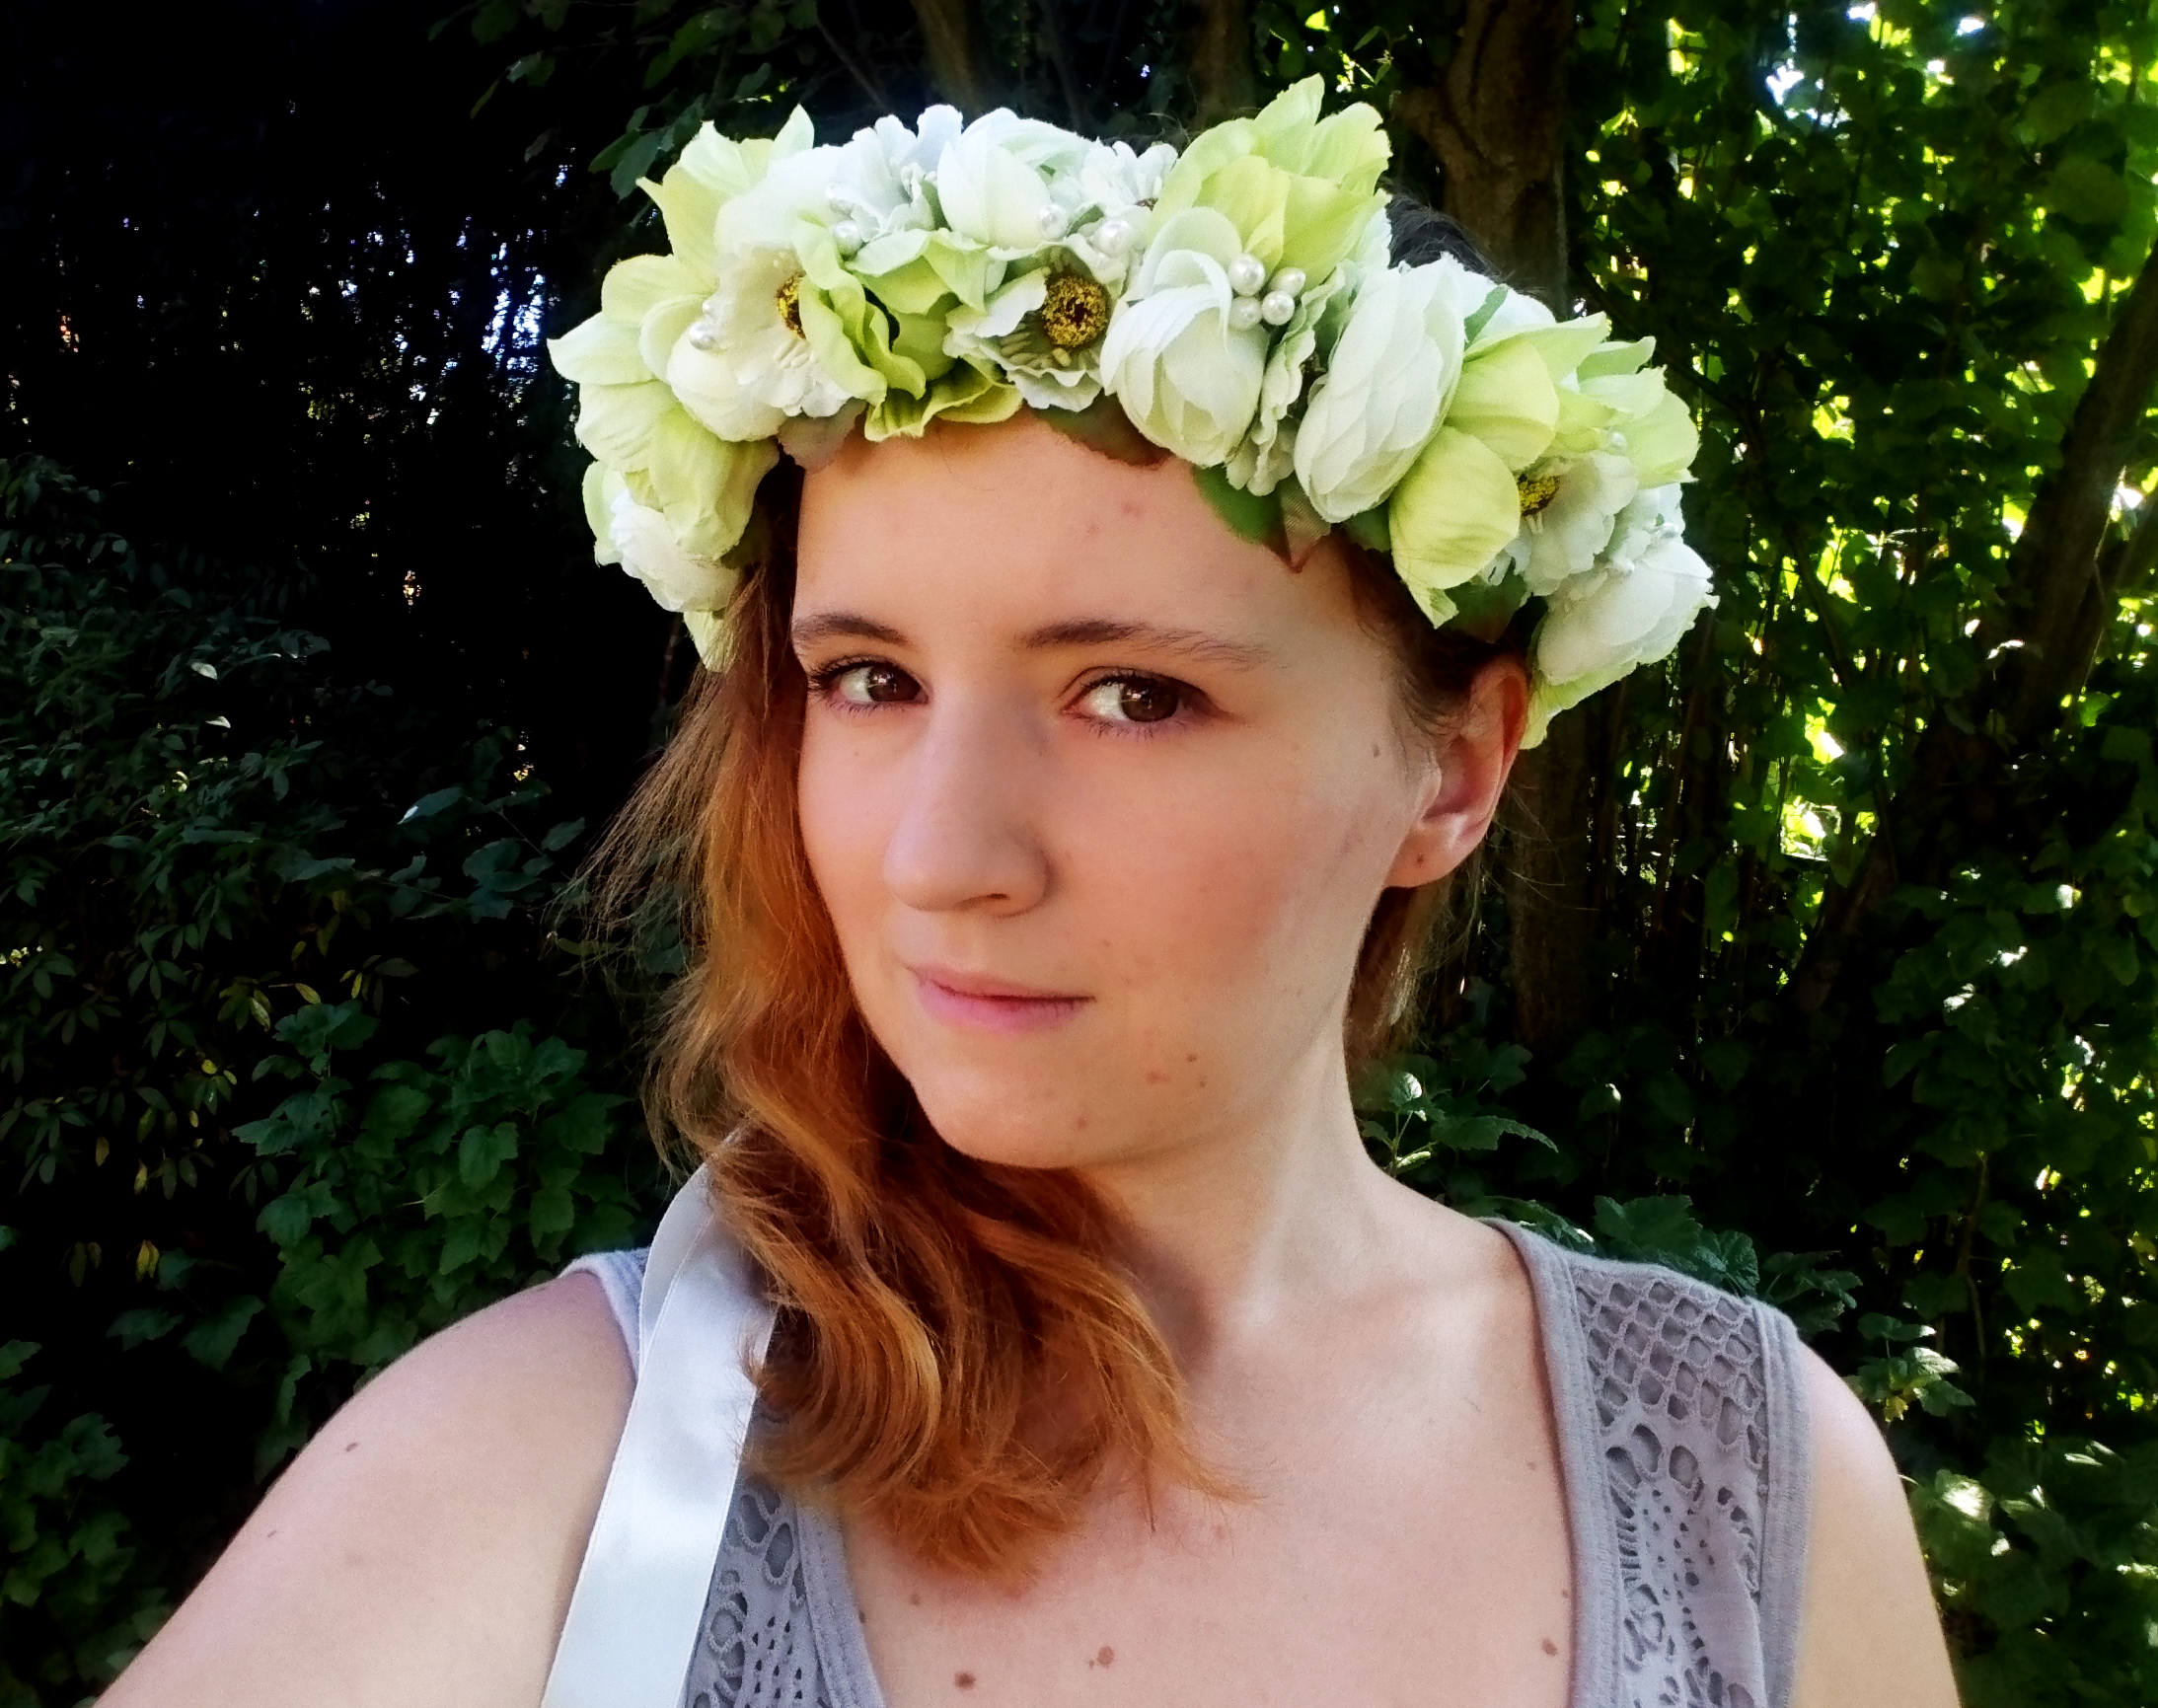 Green floral crown wreath artificial flowers greenery wedding fresh green floral crown wreath artificial flowers greenery wedding fresh trendy satin ribbon flower girl bride bridal hairpiece romantic boho izmirmasajfo Image collections